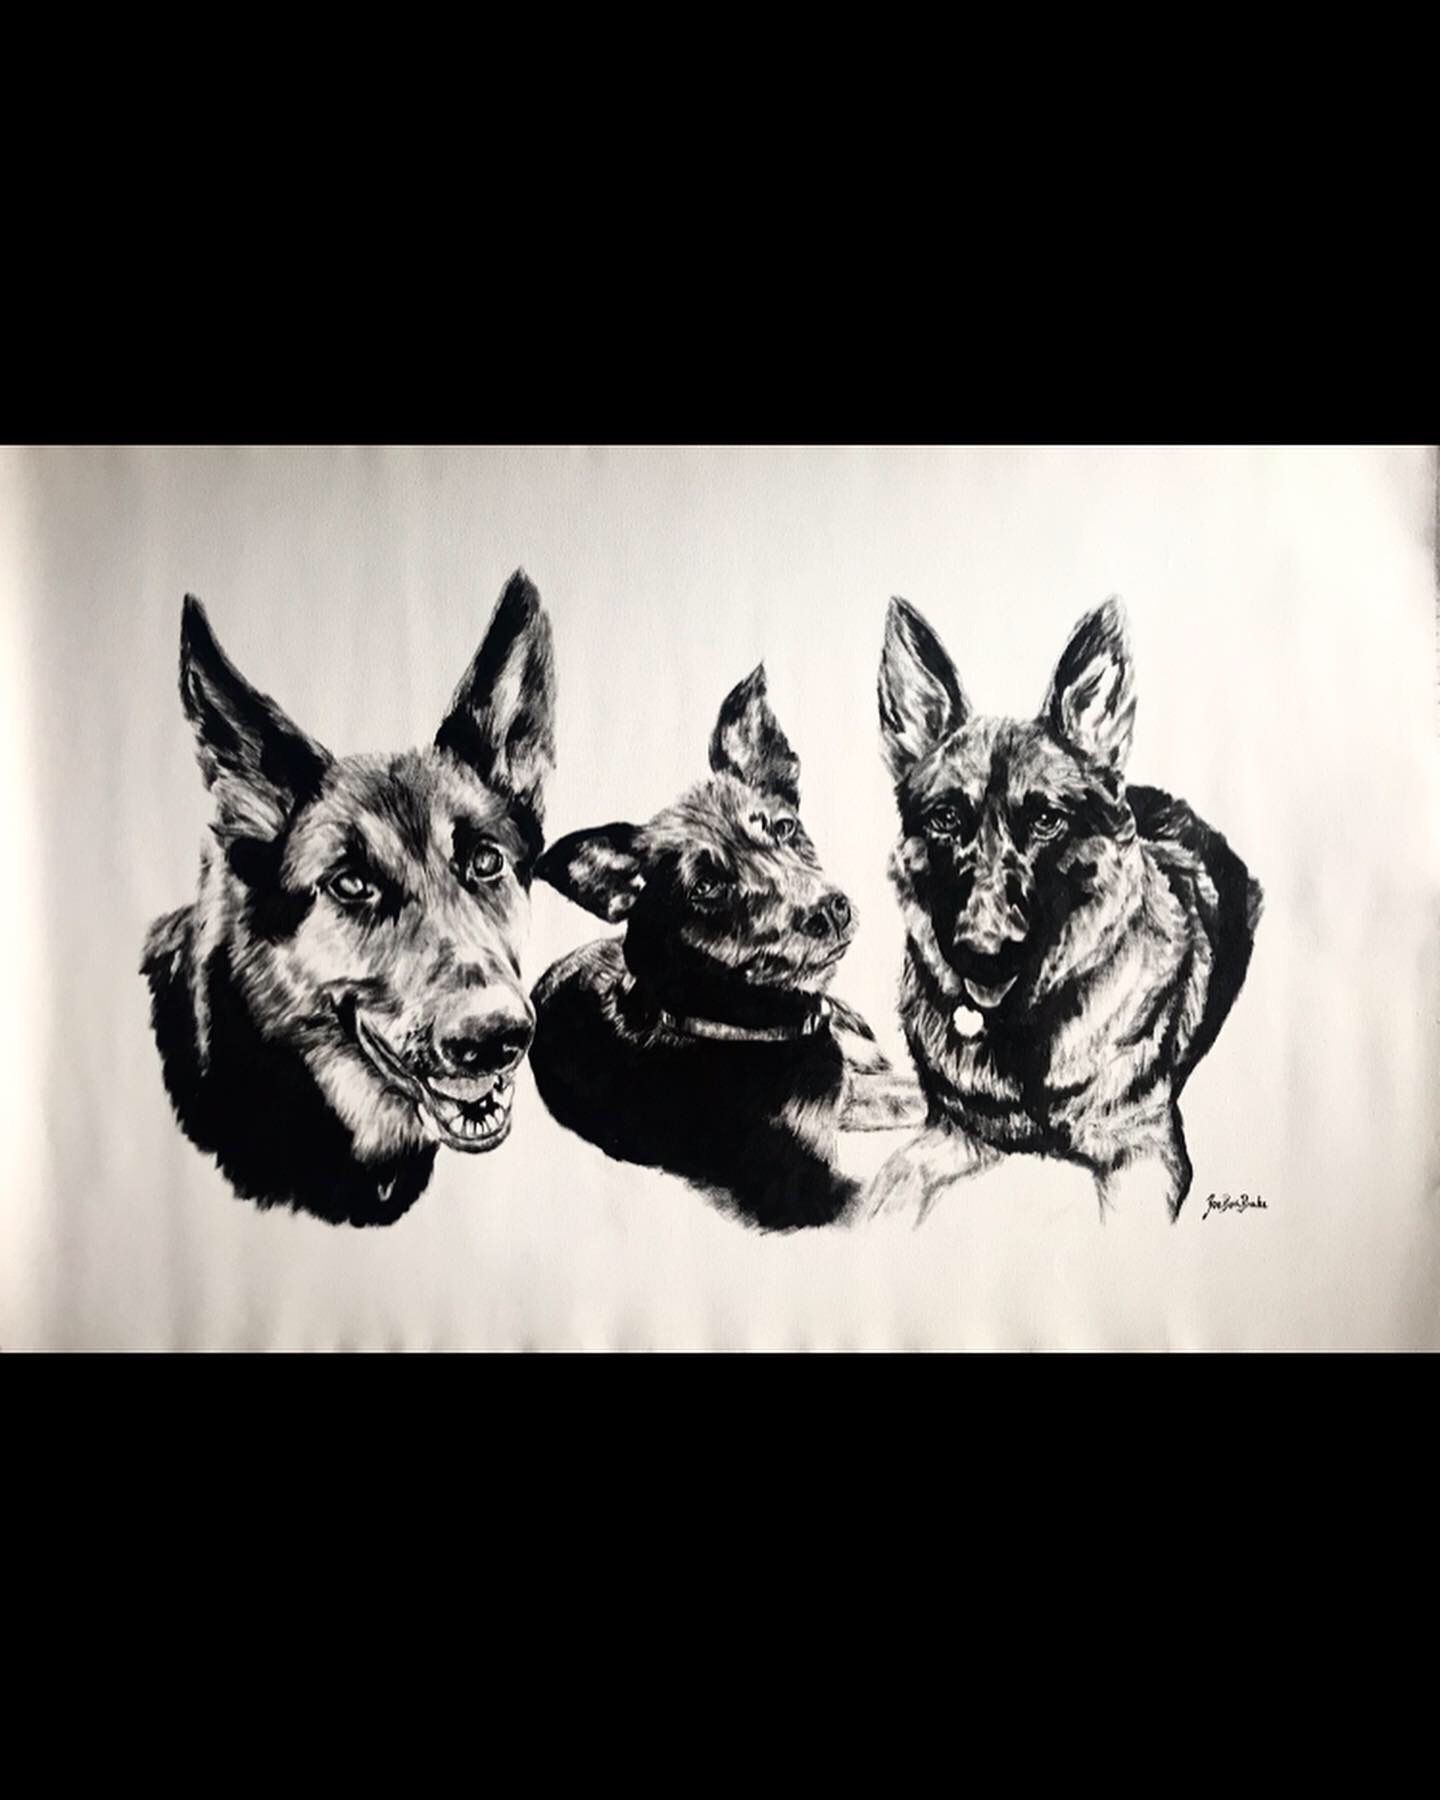 This was a special commission. None of these three dogs